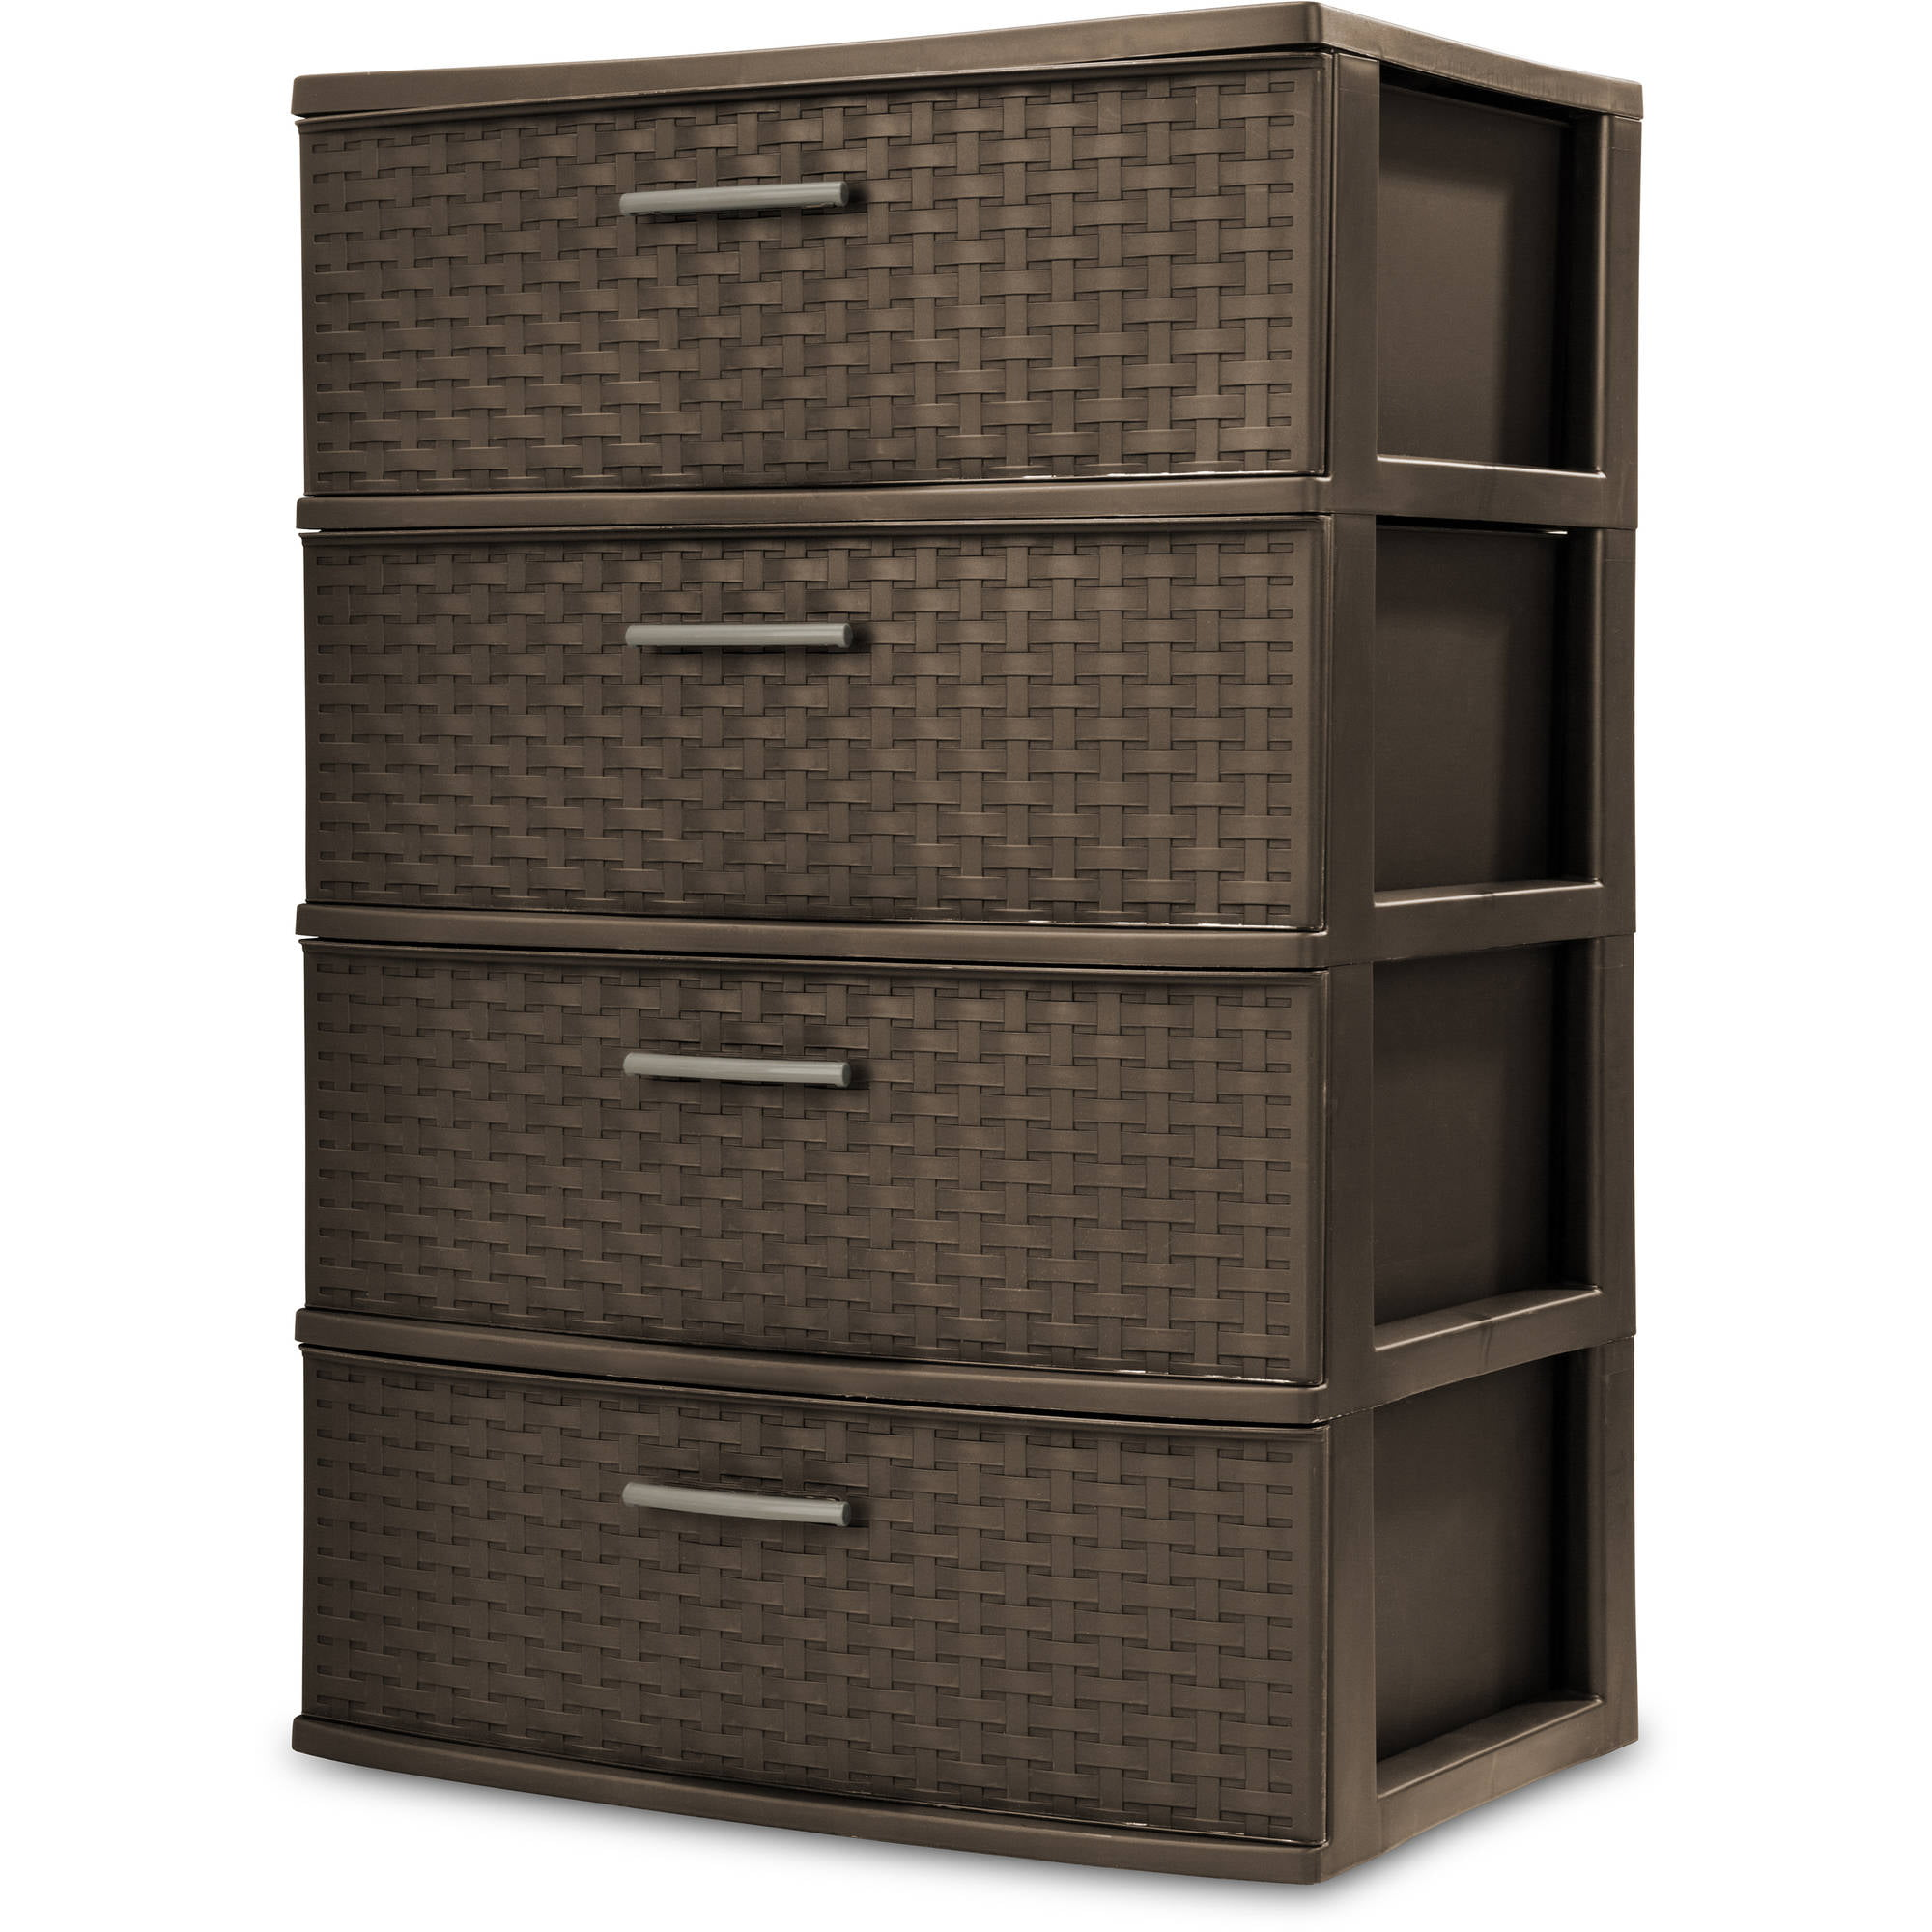 Sterilite 4 Drawer Wide Weave Tower Espresso